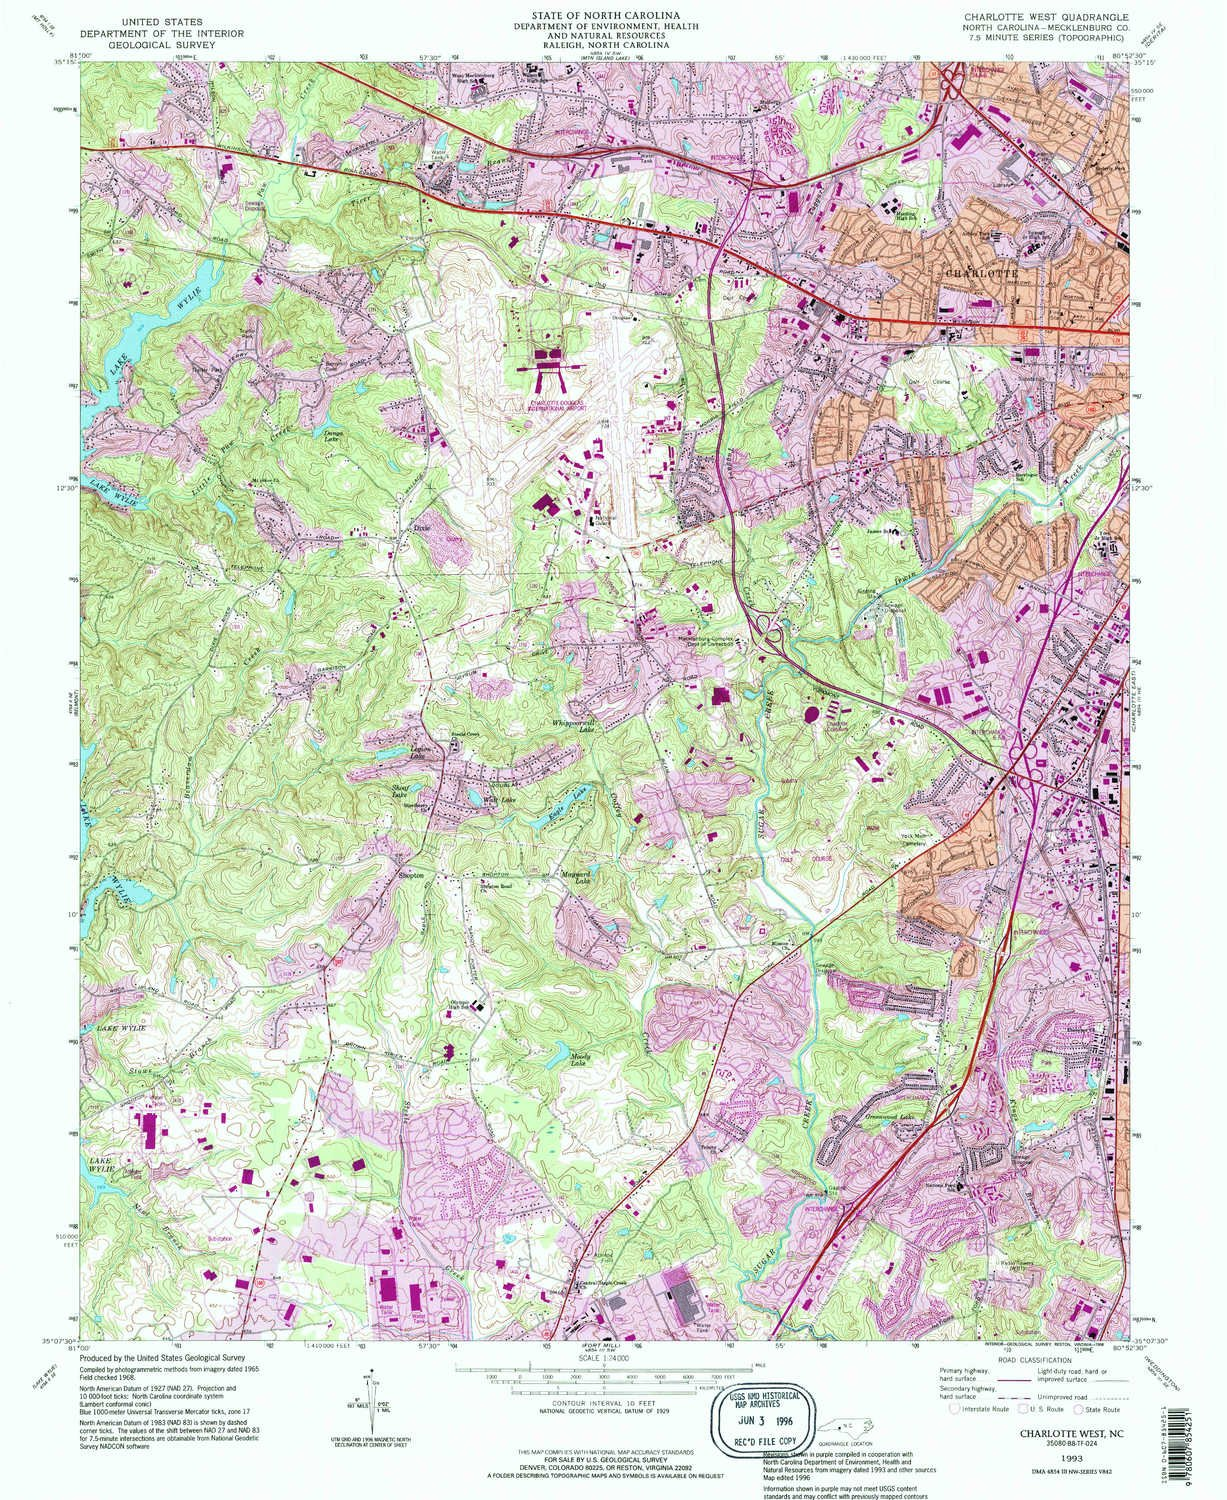 Amazoncom Yellowmaps Charlotte West Nc Topo Map 124000 Scale - Topographic-map-of-us-states